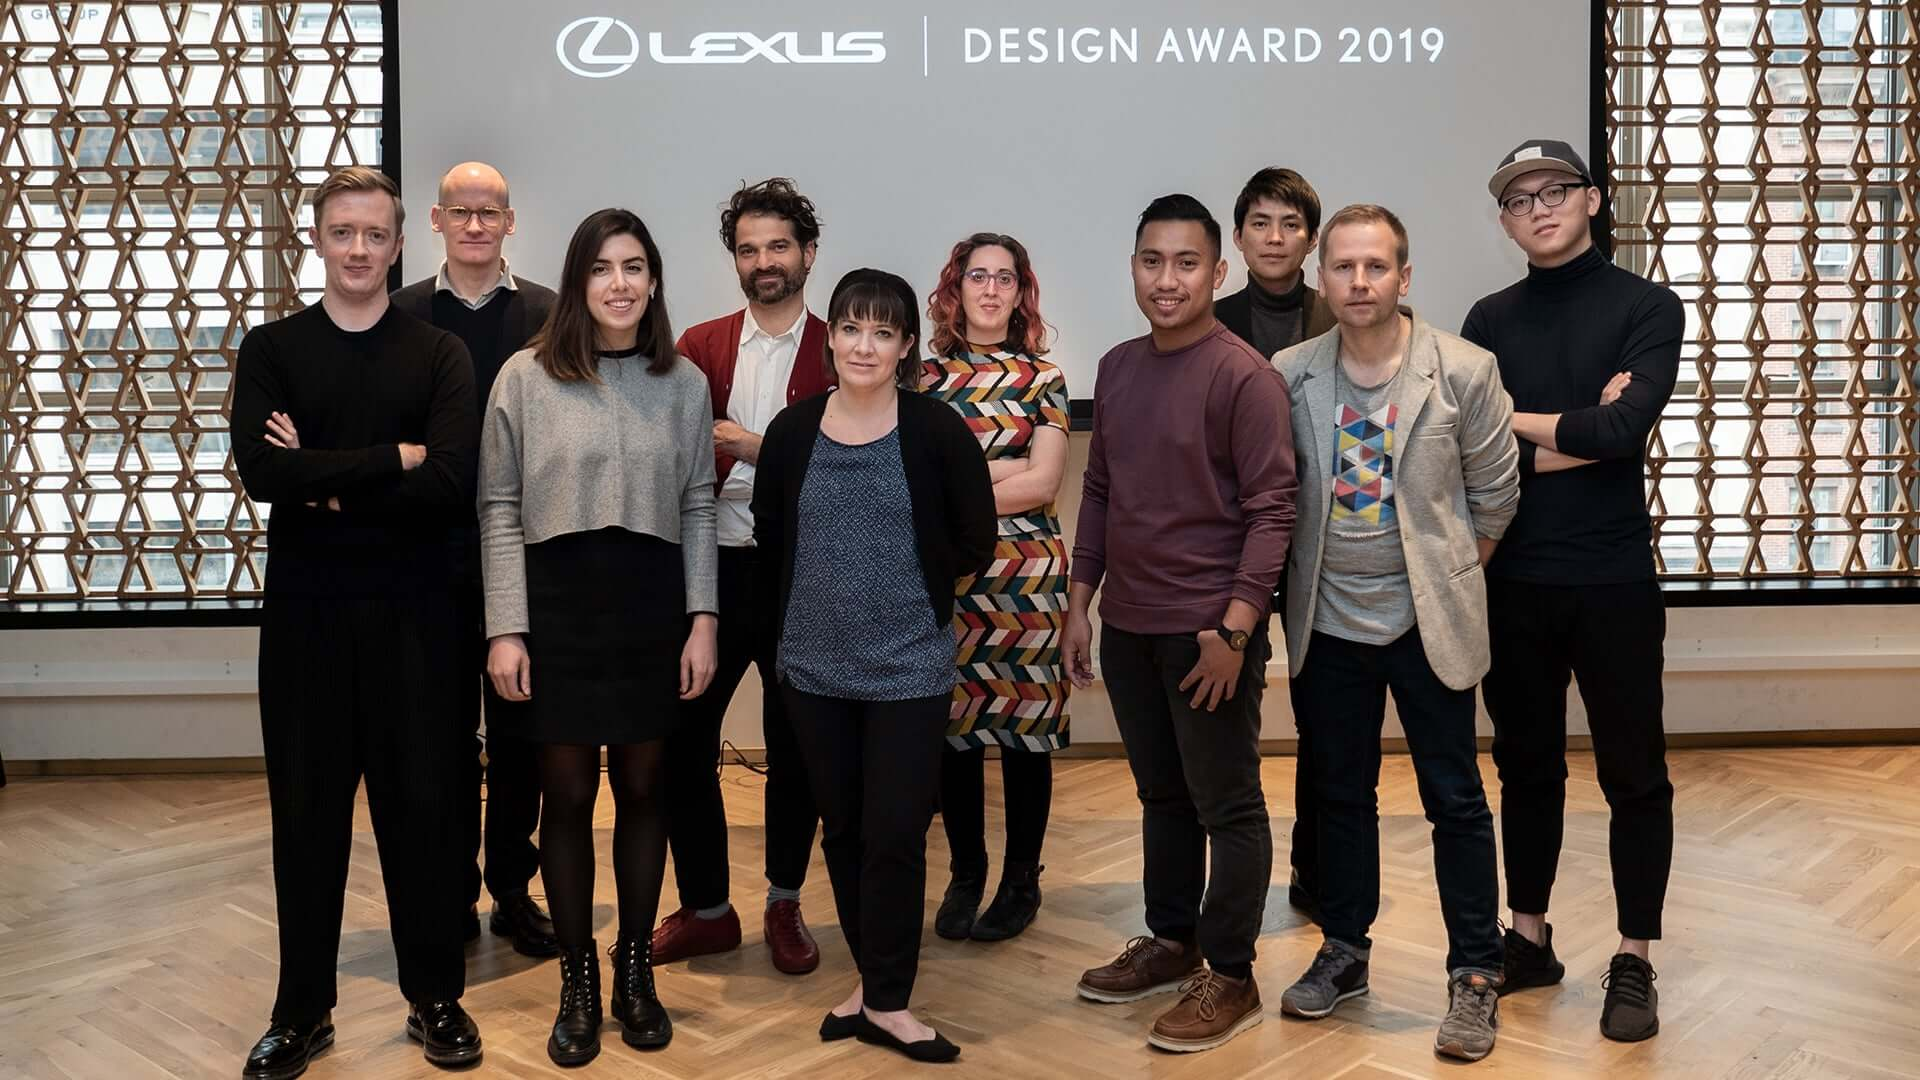 hero 1920x1080 lexus design awards